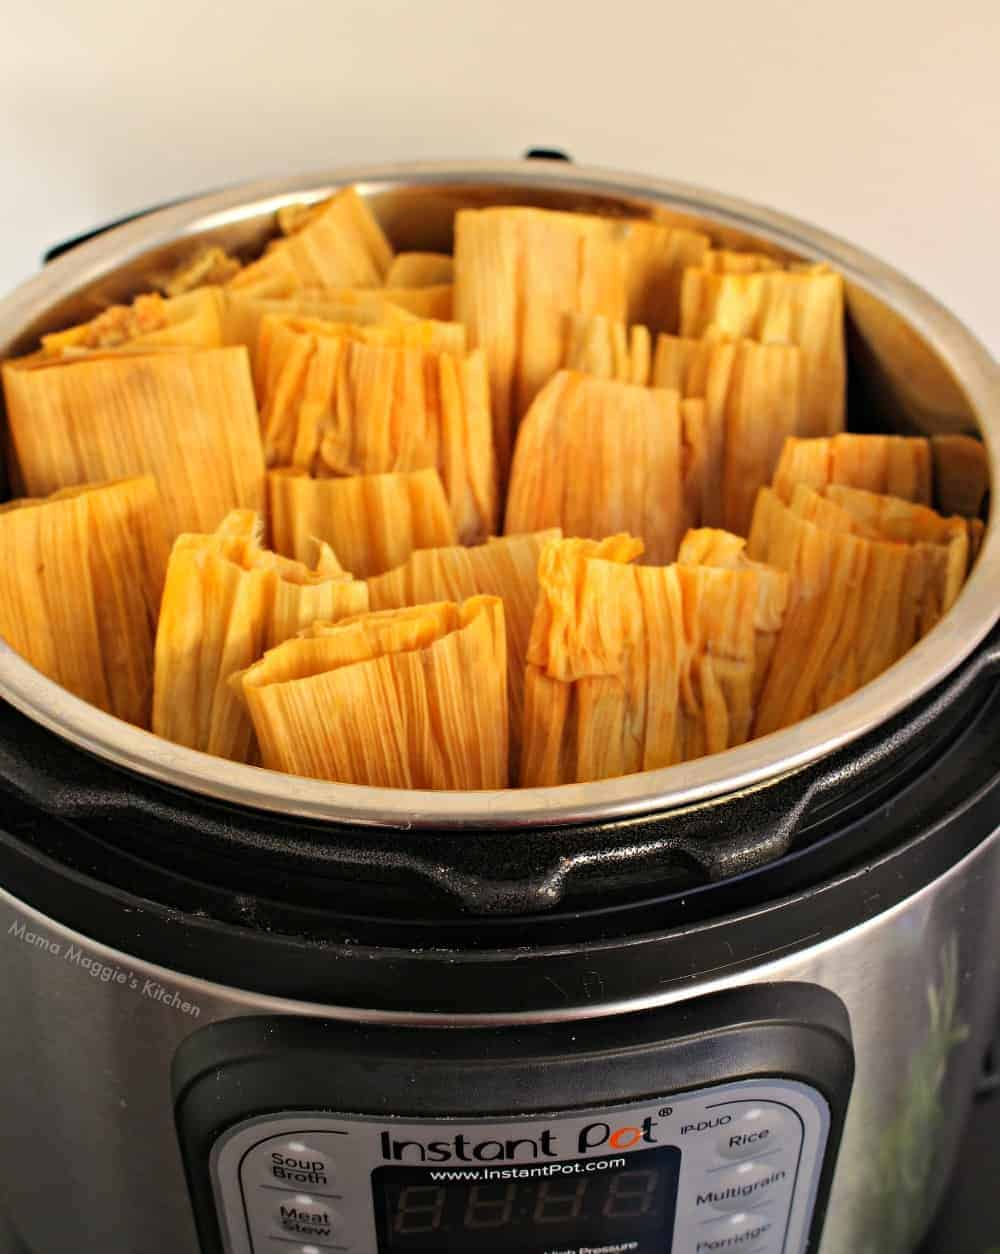 Uncooked tamales in an instant pot without the lid on.